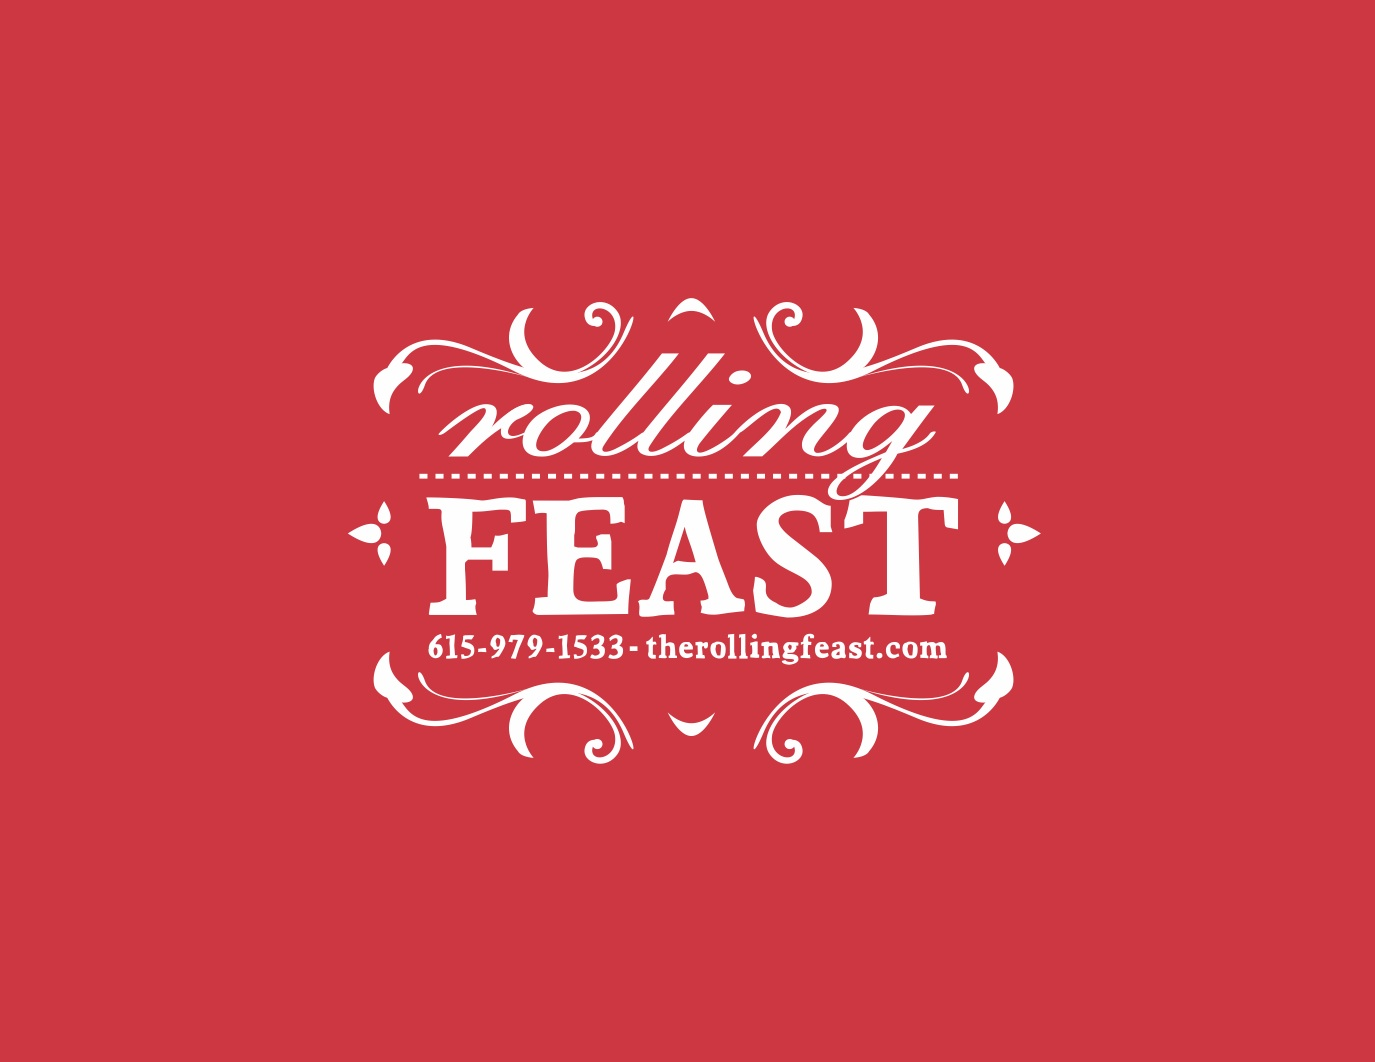 The Rolling Feast